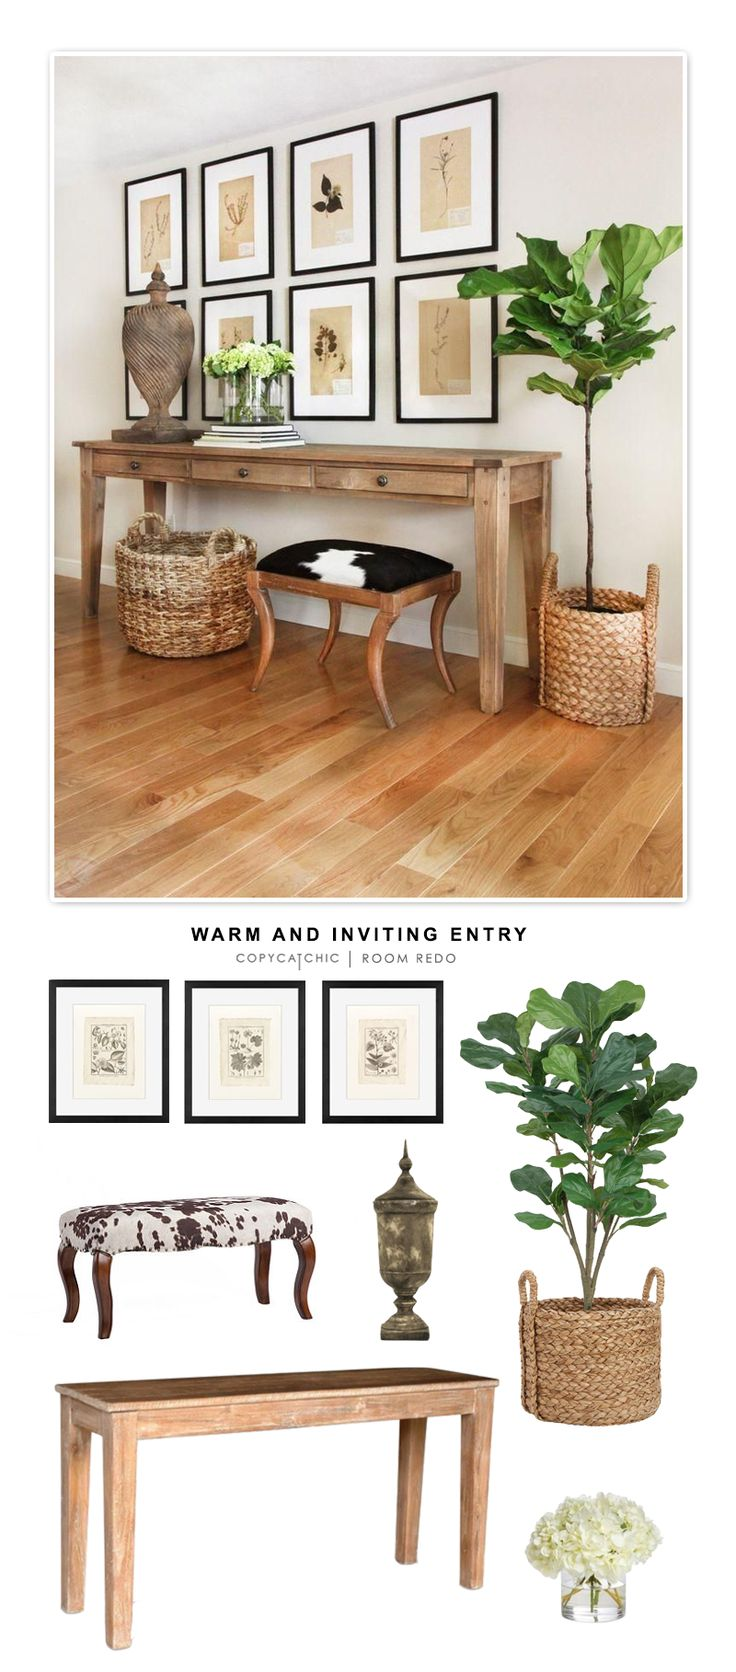 4.bp.blogspot.com -6hDZulJNX_4 Vl0vDA-iBtI AAAAAAAAfQw 7zHqBa3hLRc s0 Warm-and-Inviting-Entryway.png